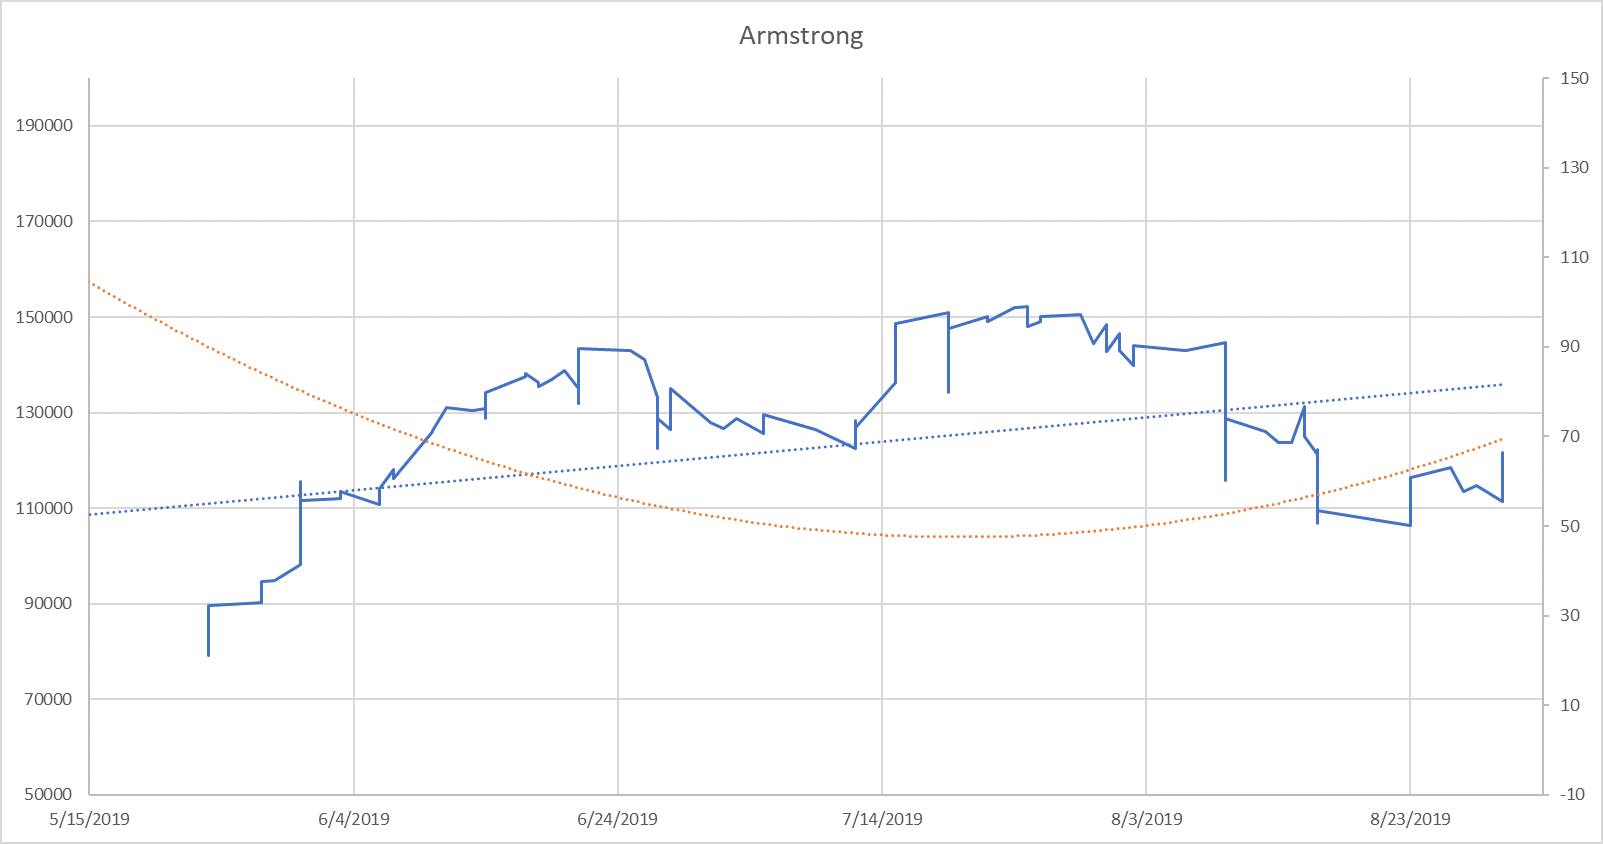 Blue: 30 day moving average (line) with linear regression line (dotted) Orange: 2 order polynomial regression of median days on market